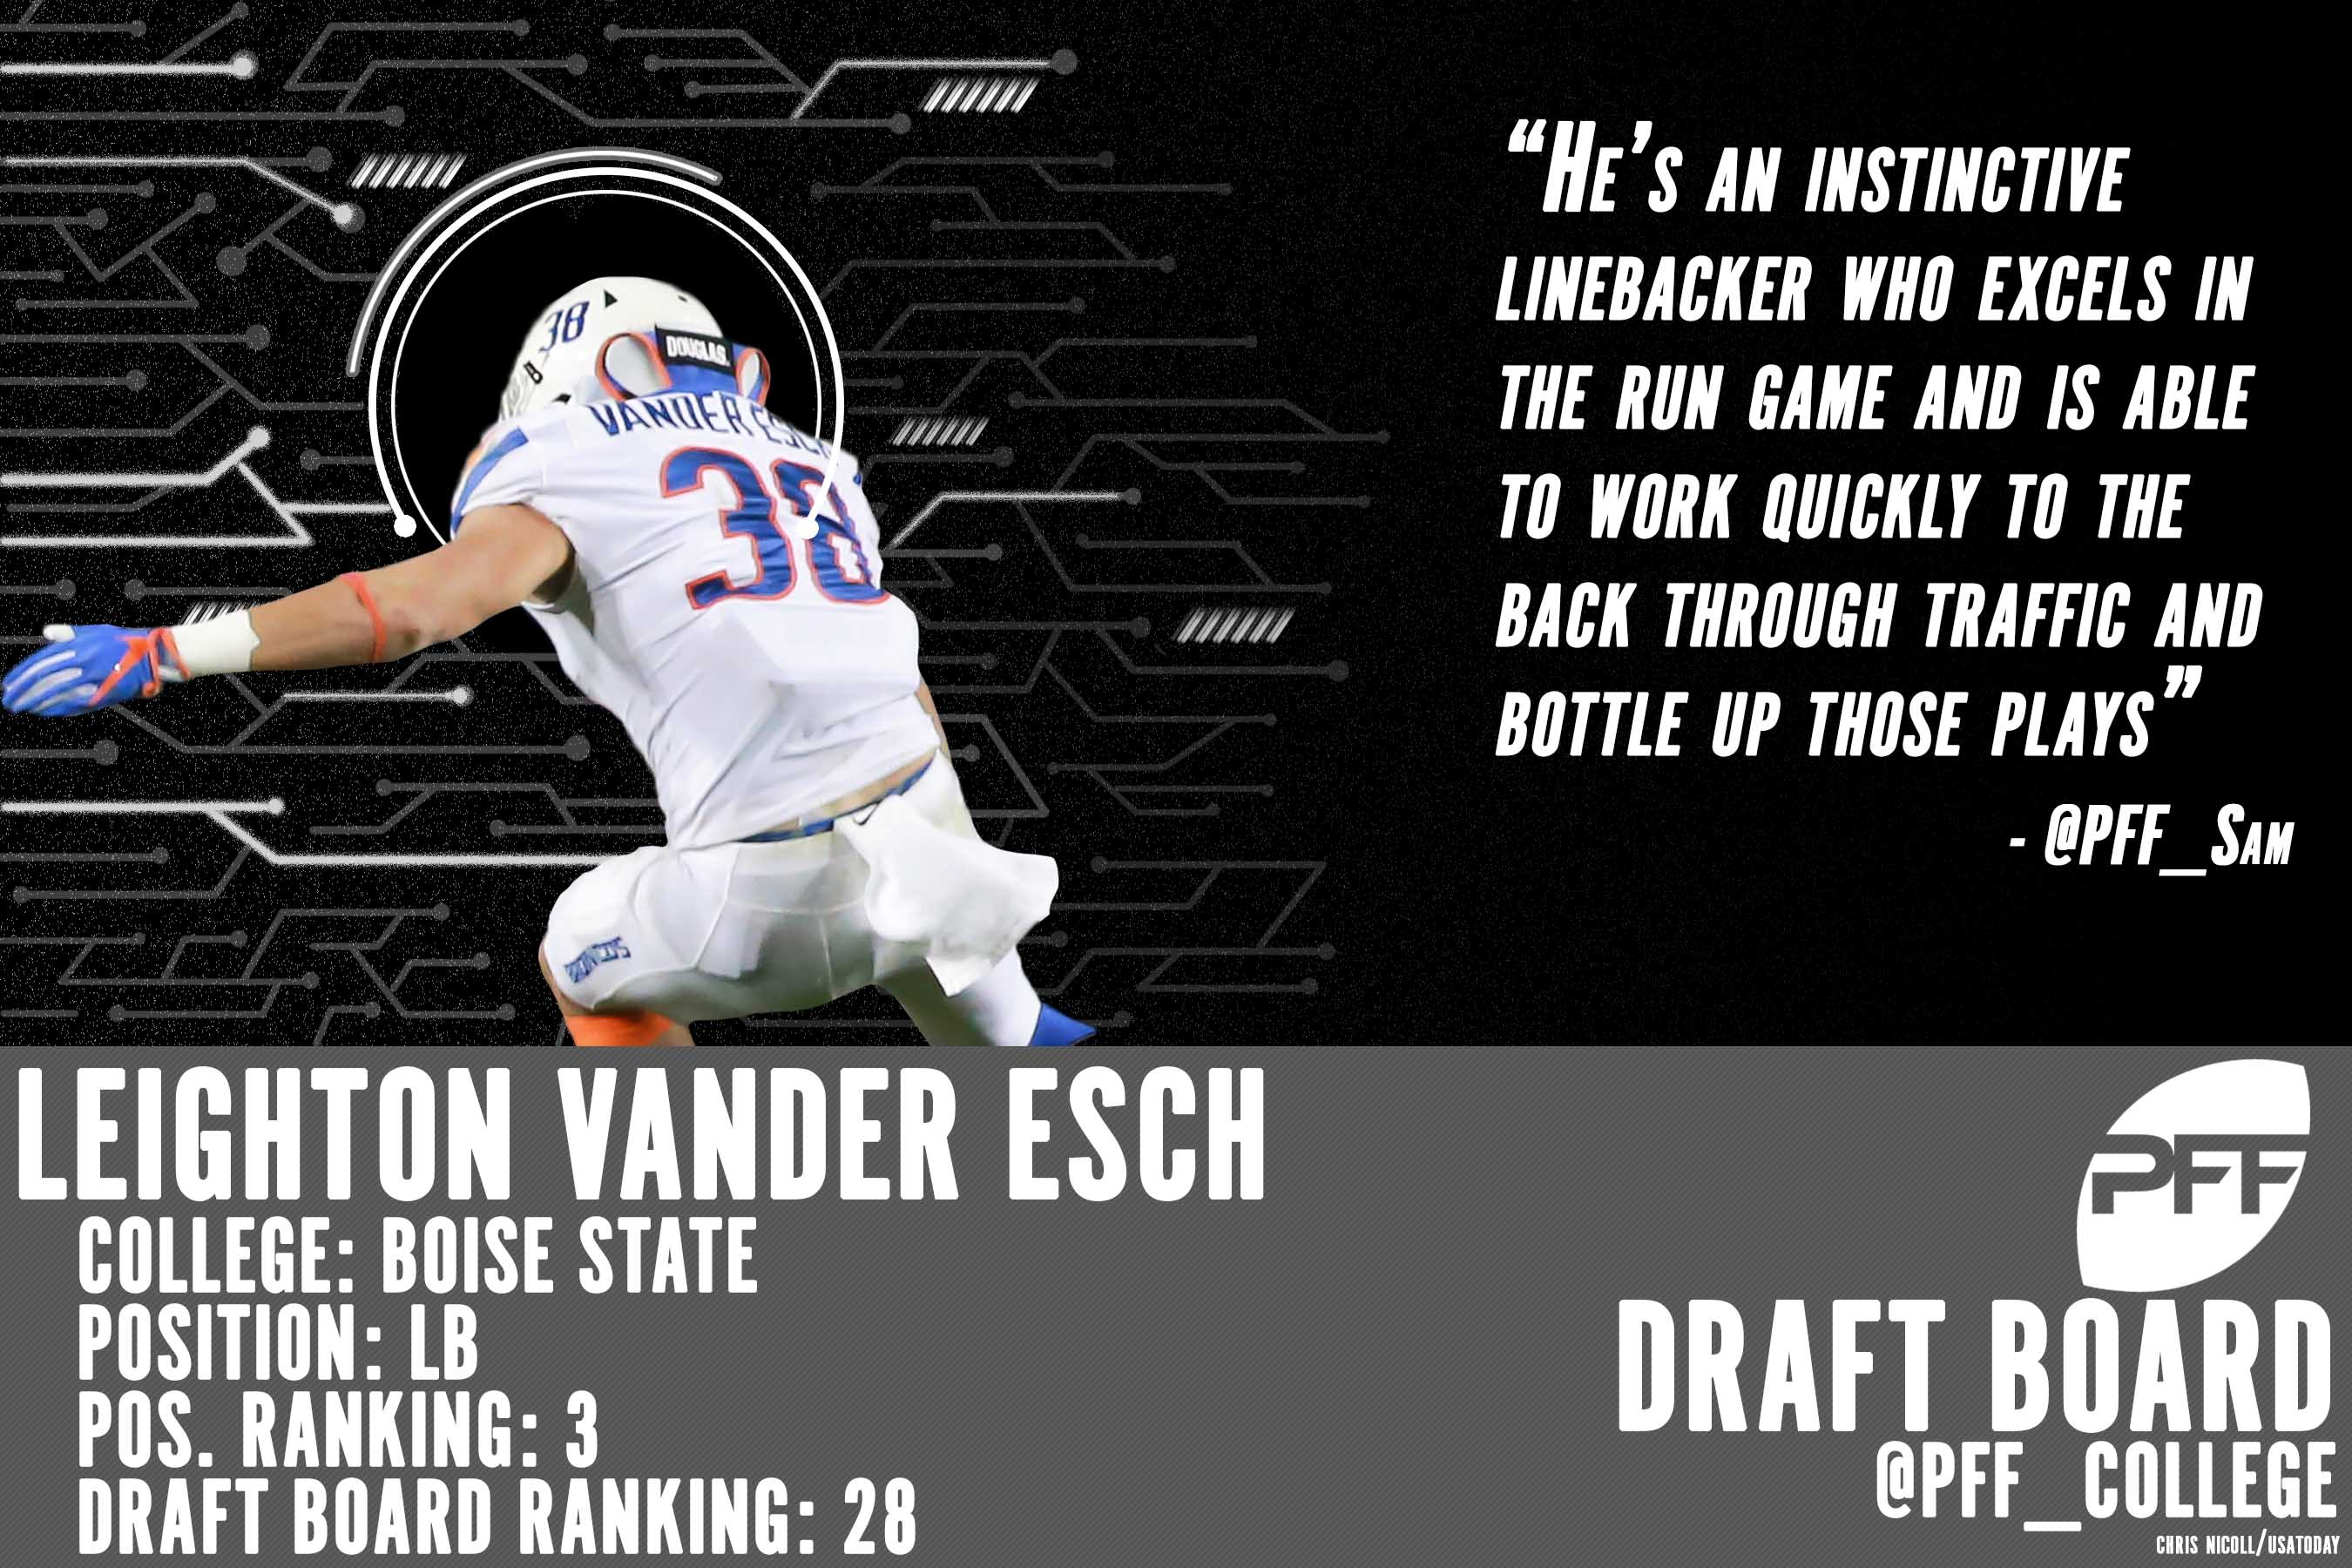 Leighton Vander Esch, 2018 NFL Draft rankings